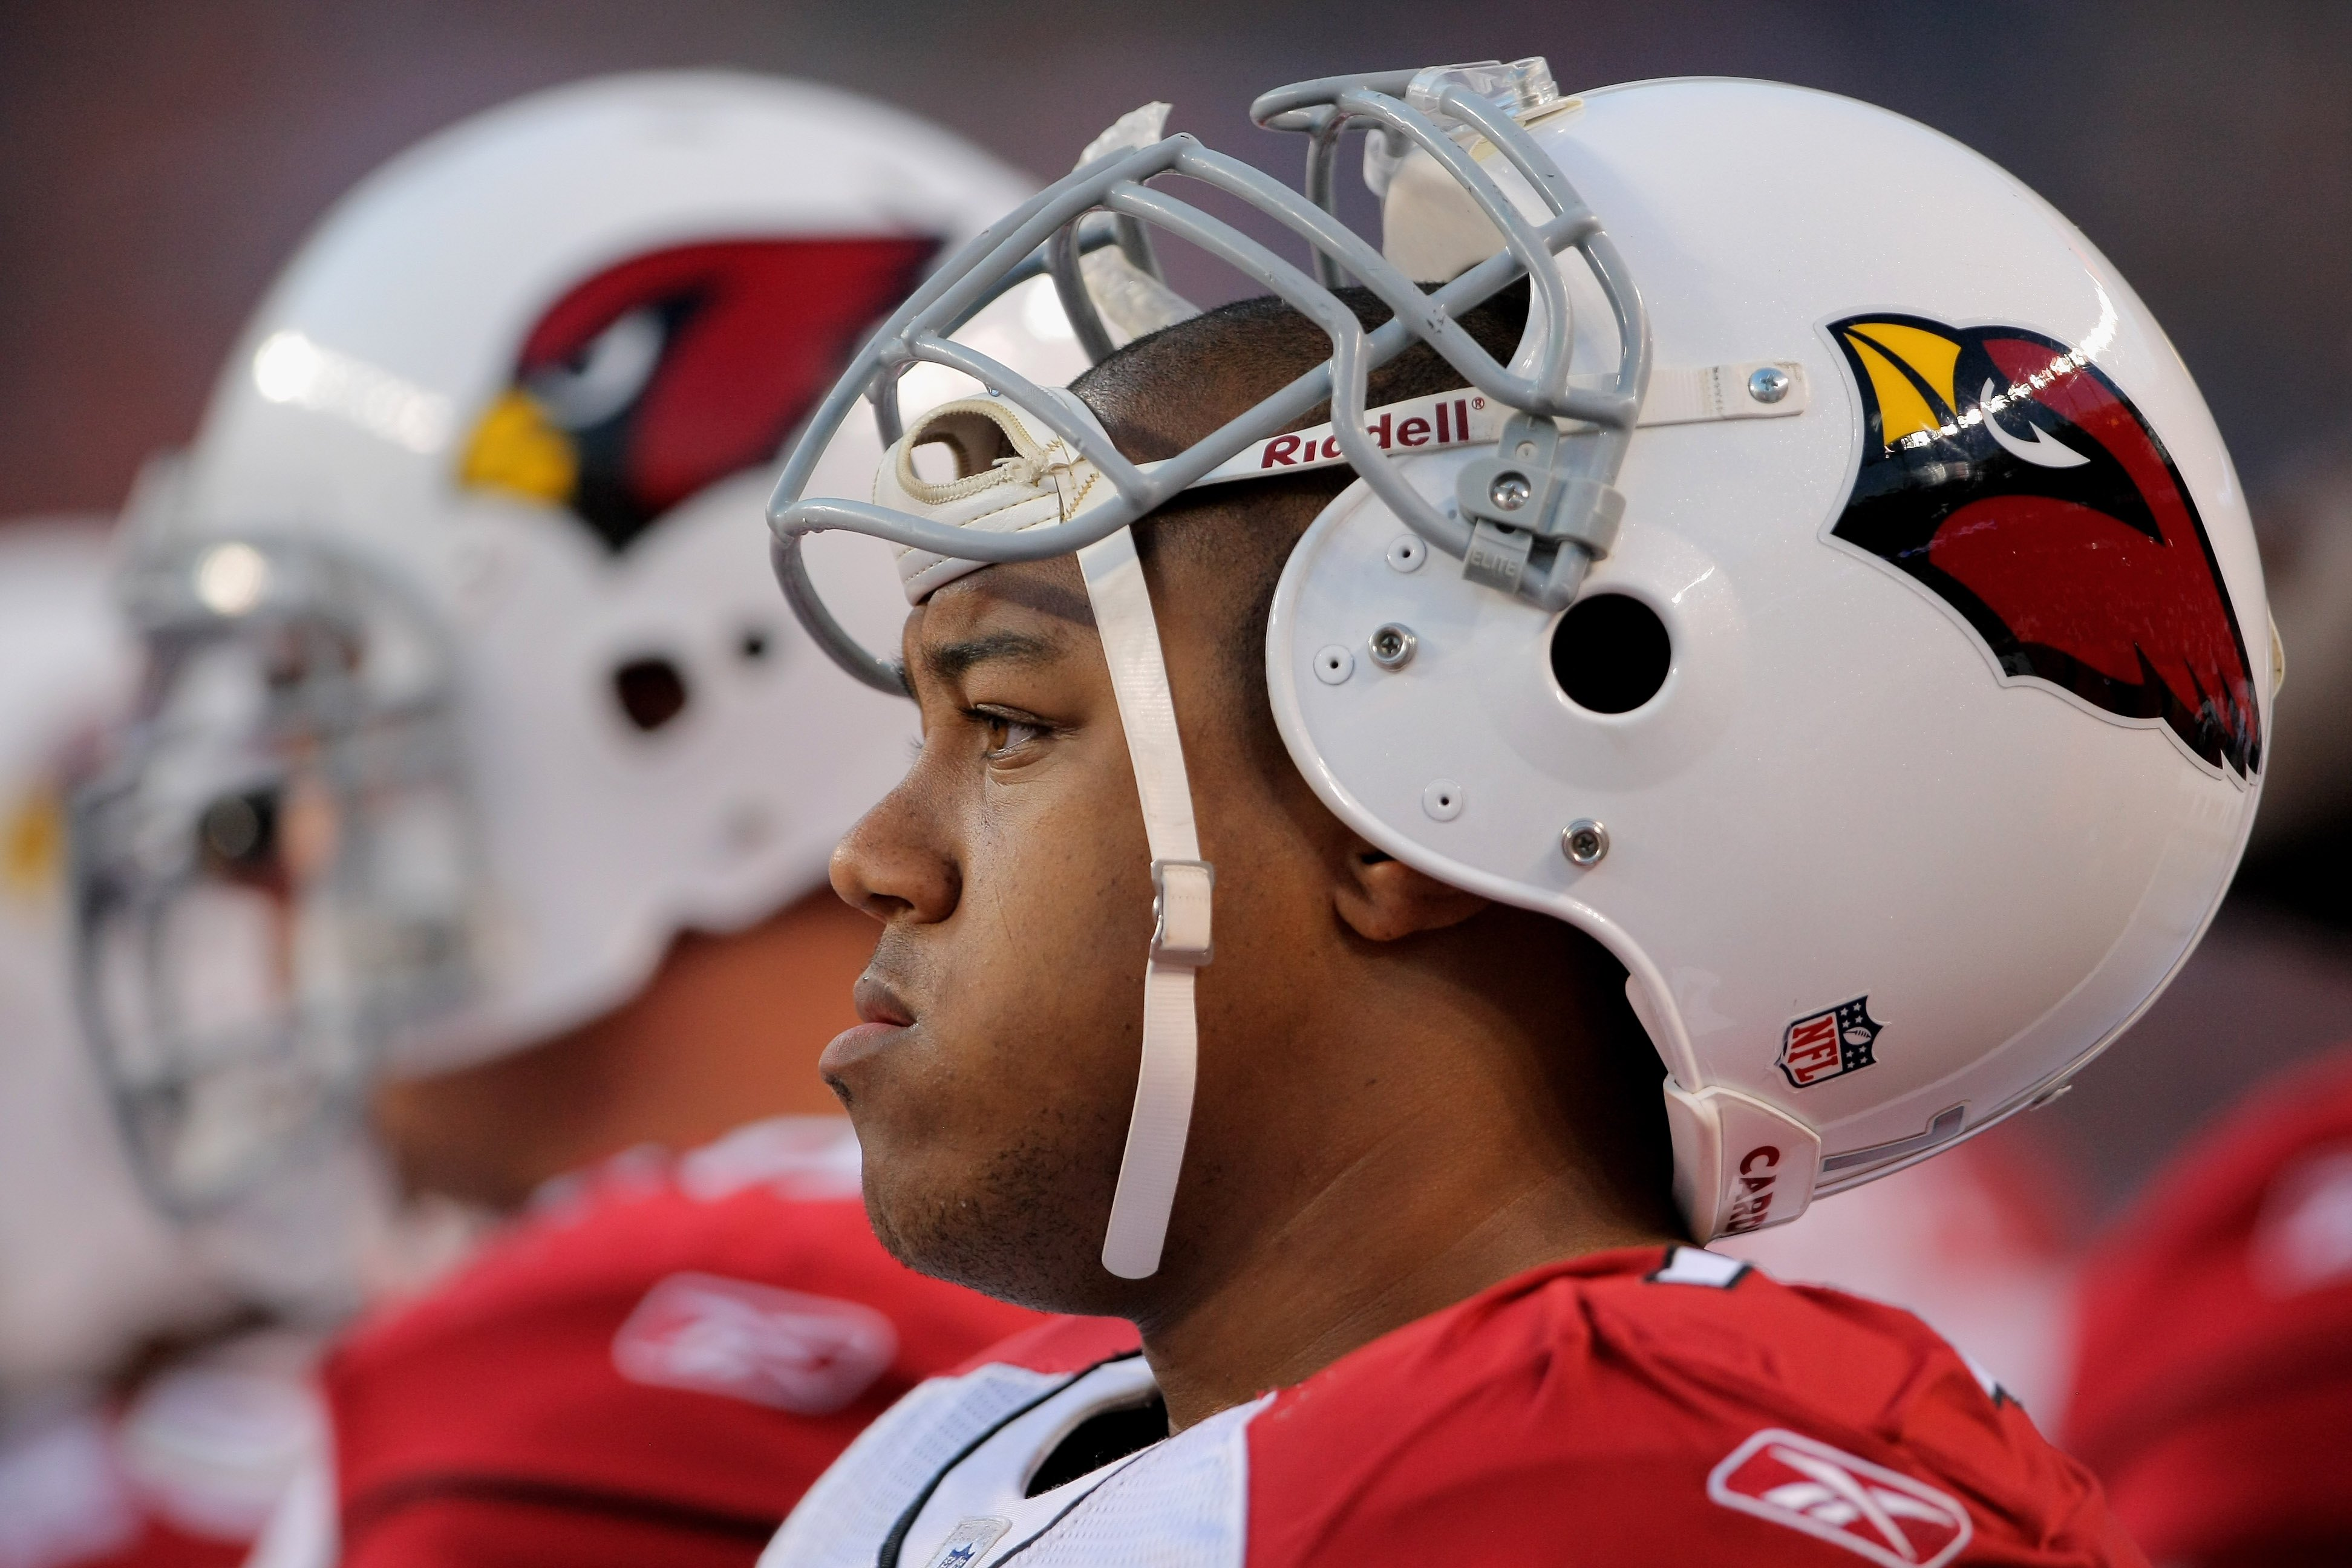 DENVER - SEPTEMBER 03:  Guard Reggie Wells #74 of the Arizona Cardinals awaits action on the sidelines against the Denver Broncos during NFL preseason action at Invesco Field at Mile High on September 3, 2009 in Denver, Colorado. The Broncos defeated the